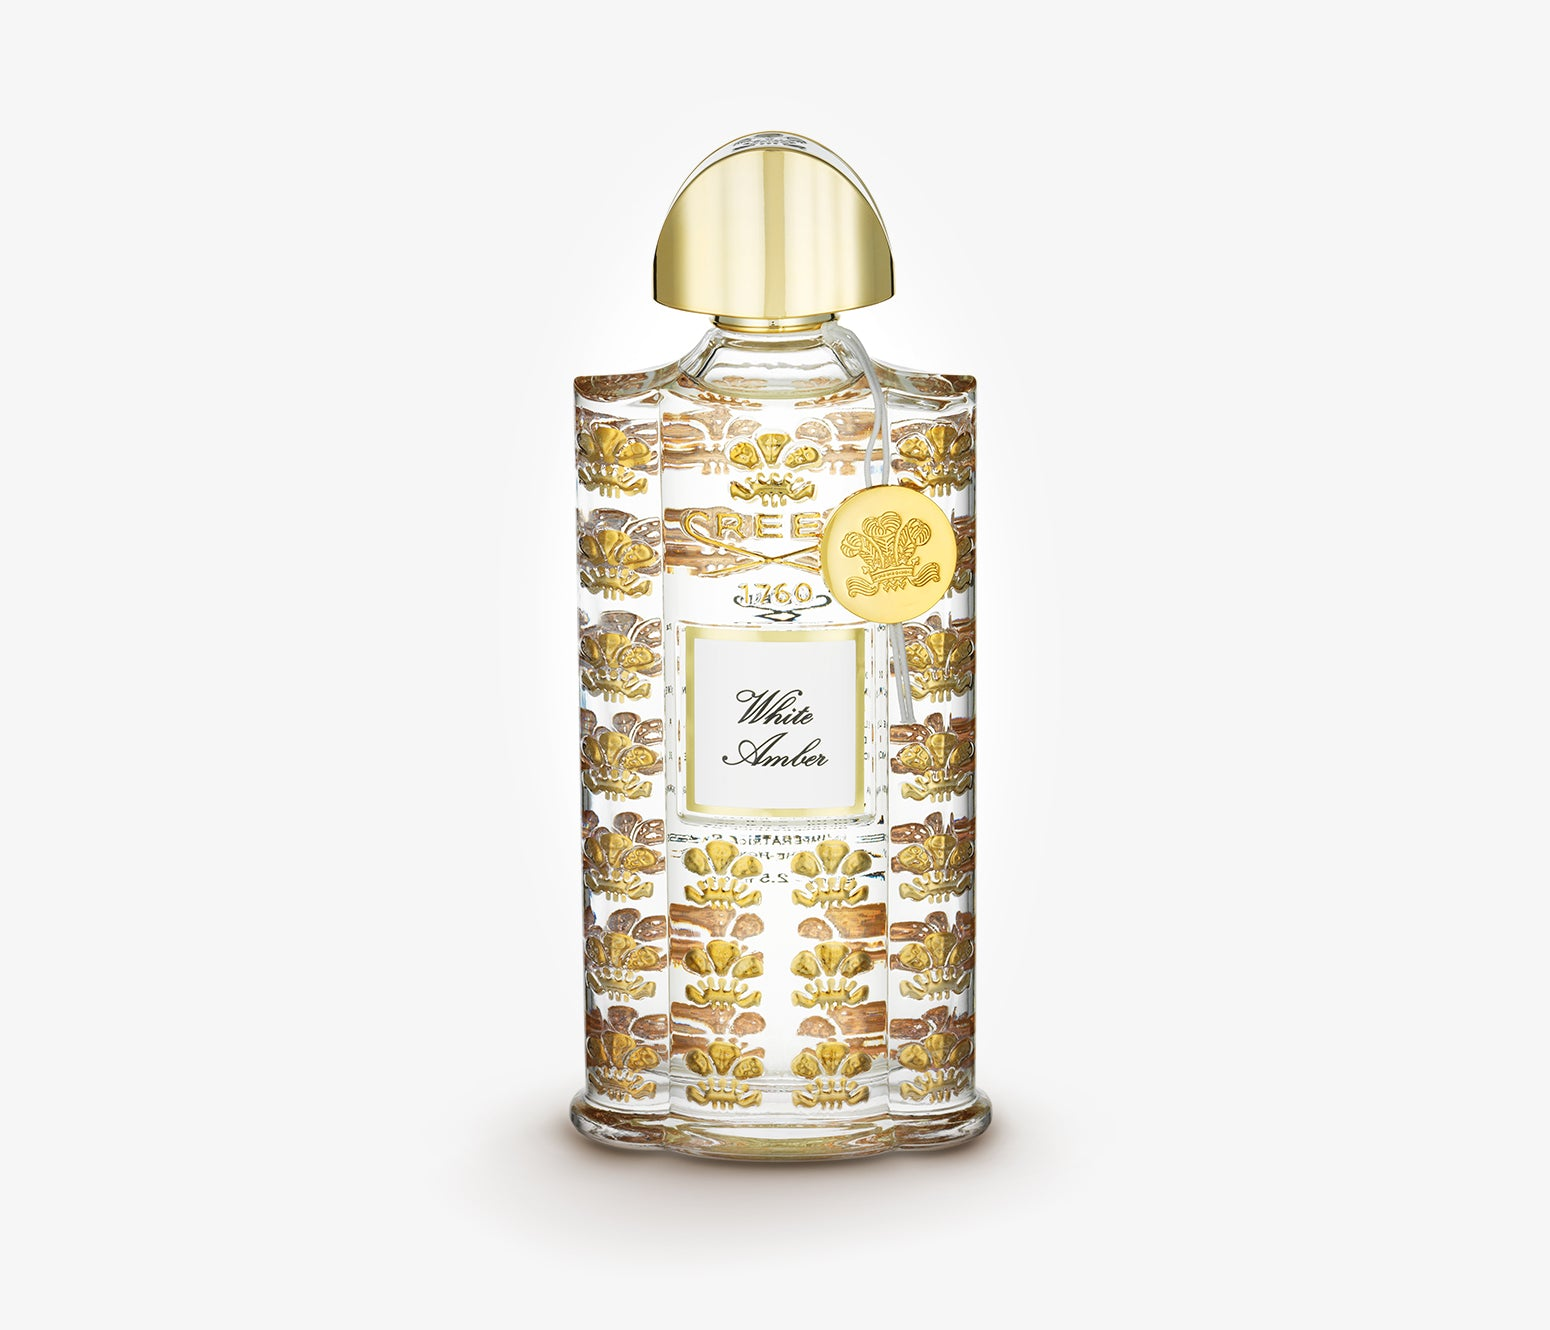 Creed - Royal Exclusives White Amber - 75ml - OGC001 - Product Image - Fragrance - Les Senteurs